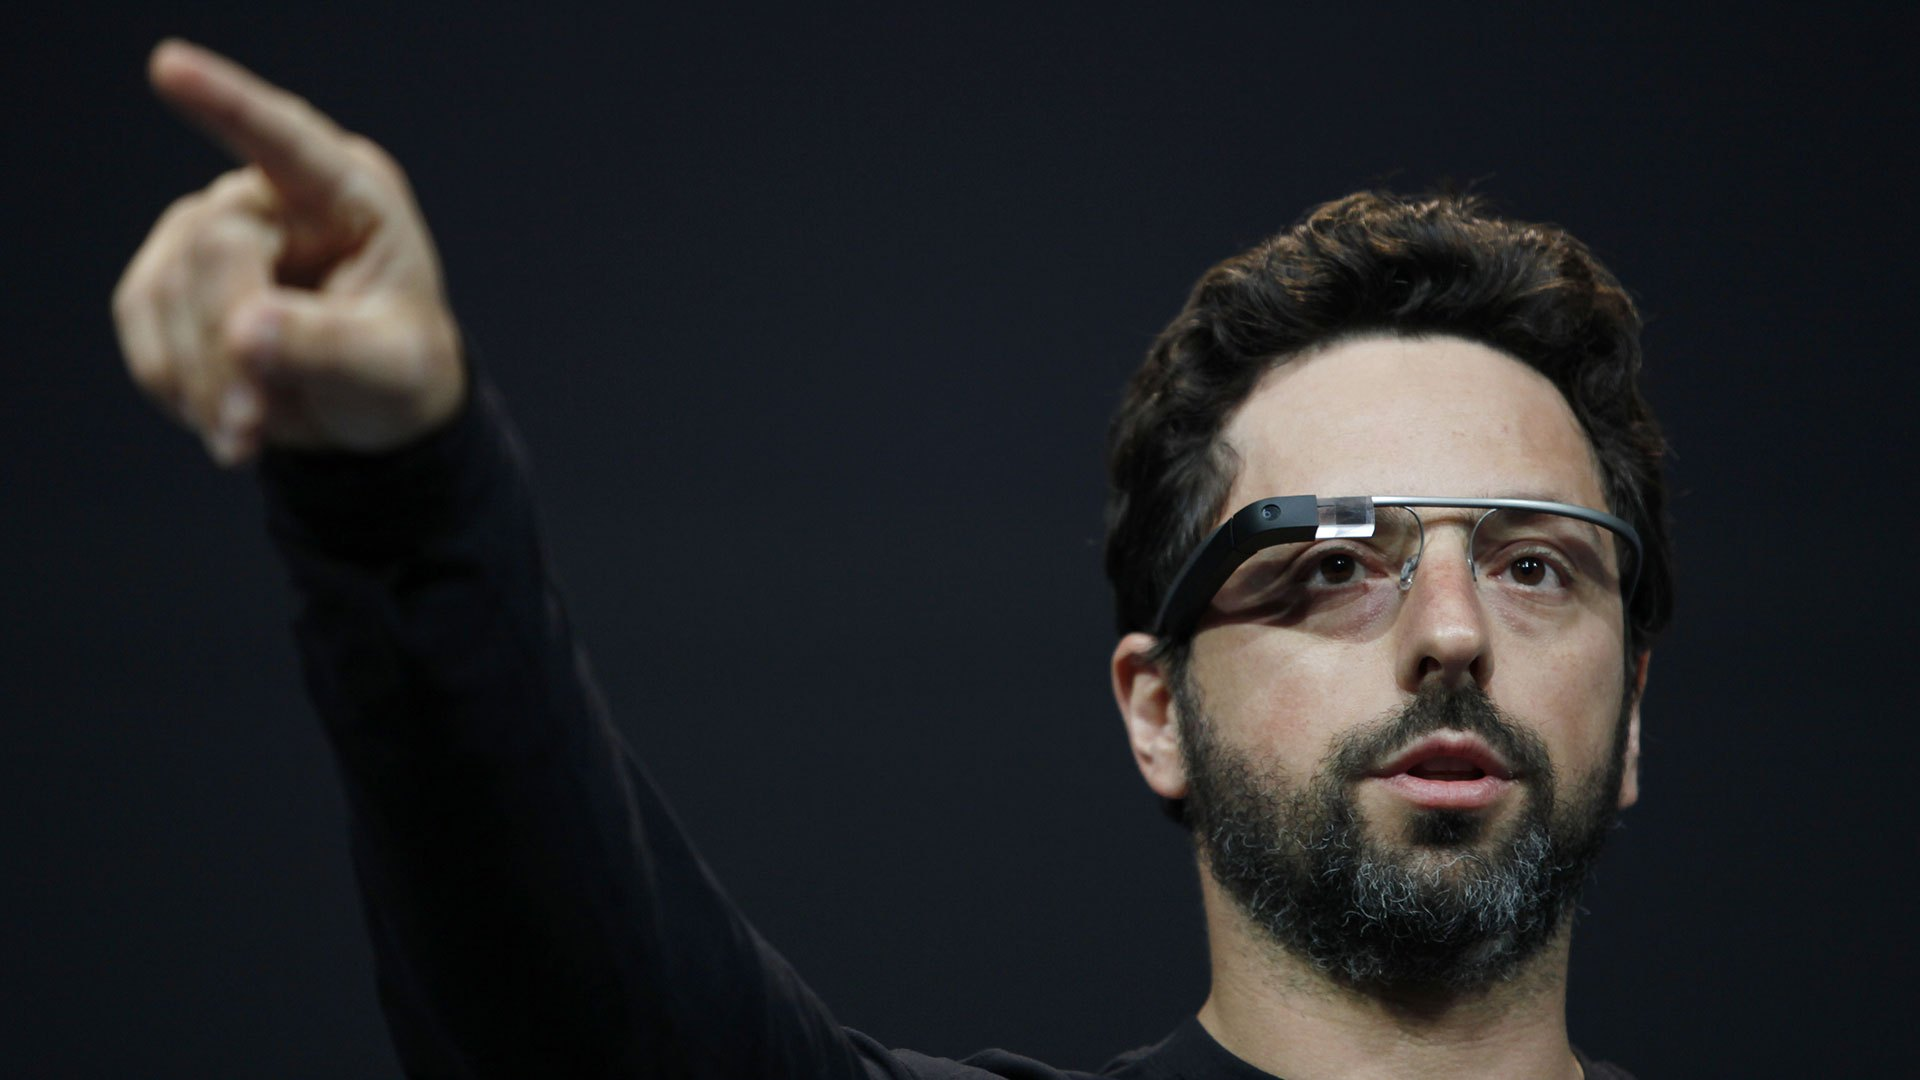 Best 49 Sergey Brin Wallpaper on HipWallpaper Sergey Brin 1920x1080